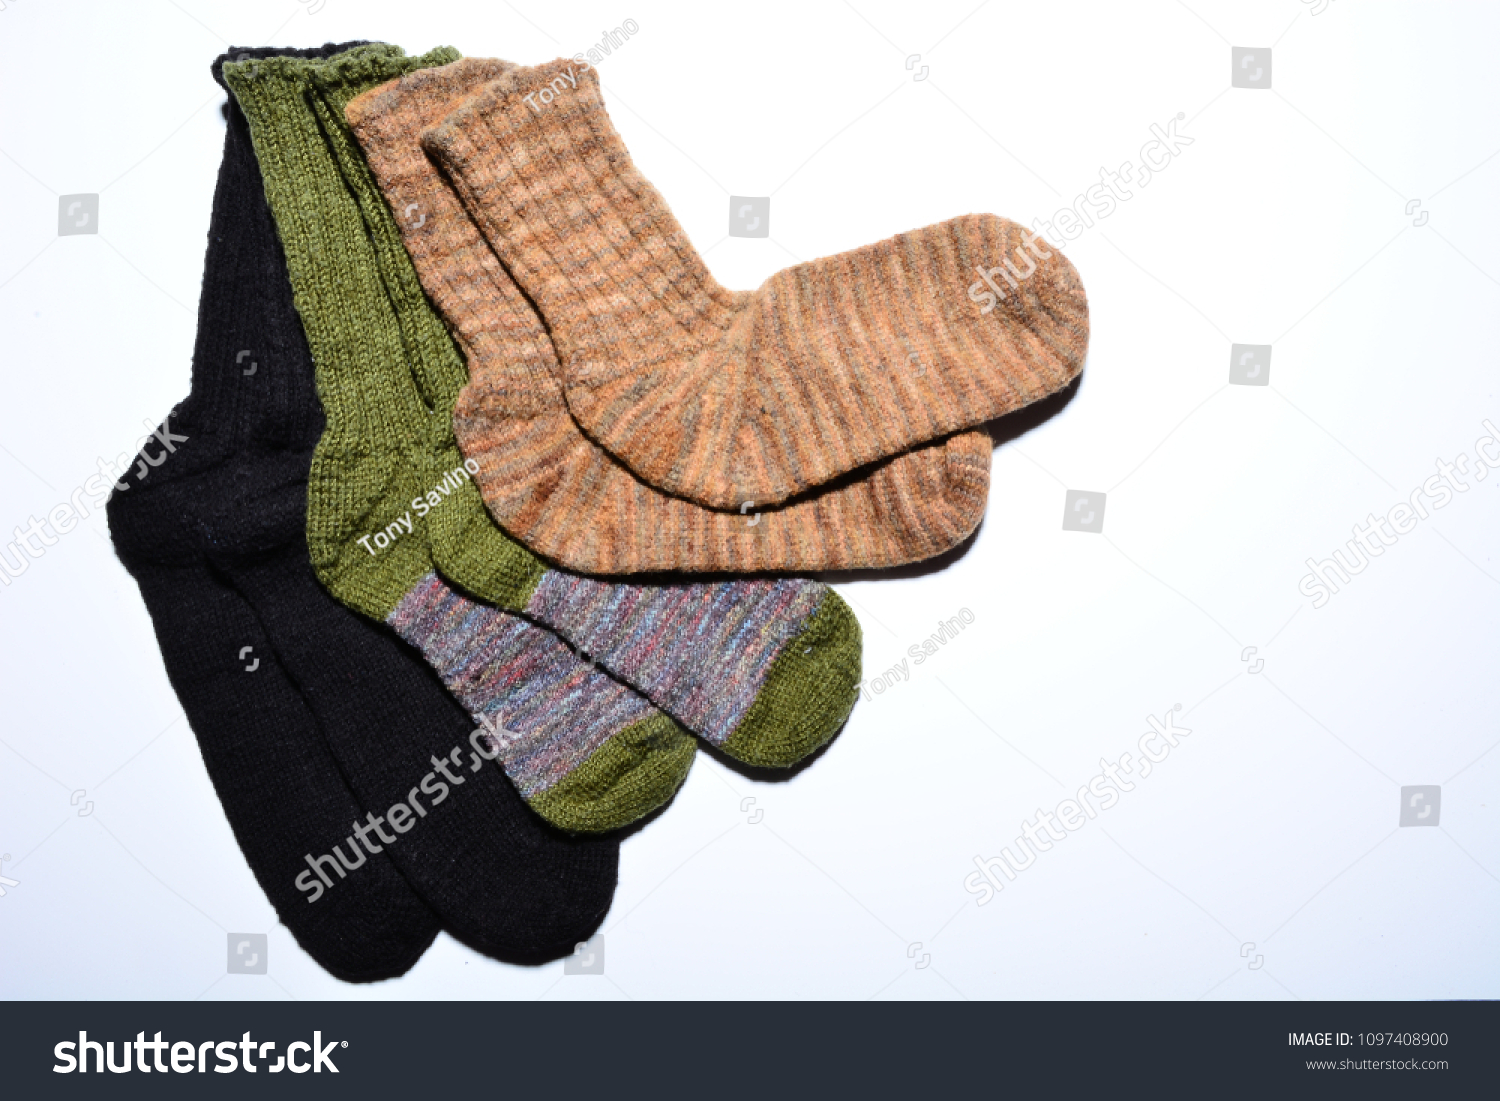 stock-photo-three-pairs-of-hand-knit-sox-beige-black-plus-green-and-variegated-violet-1097408900.jpg